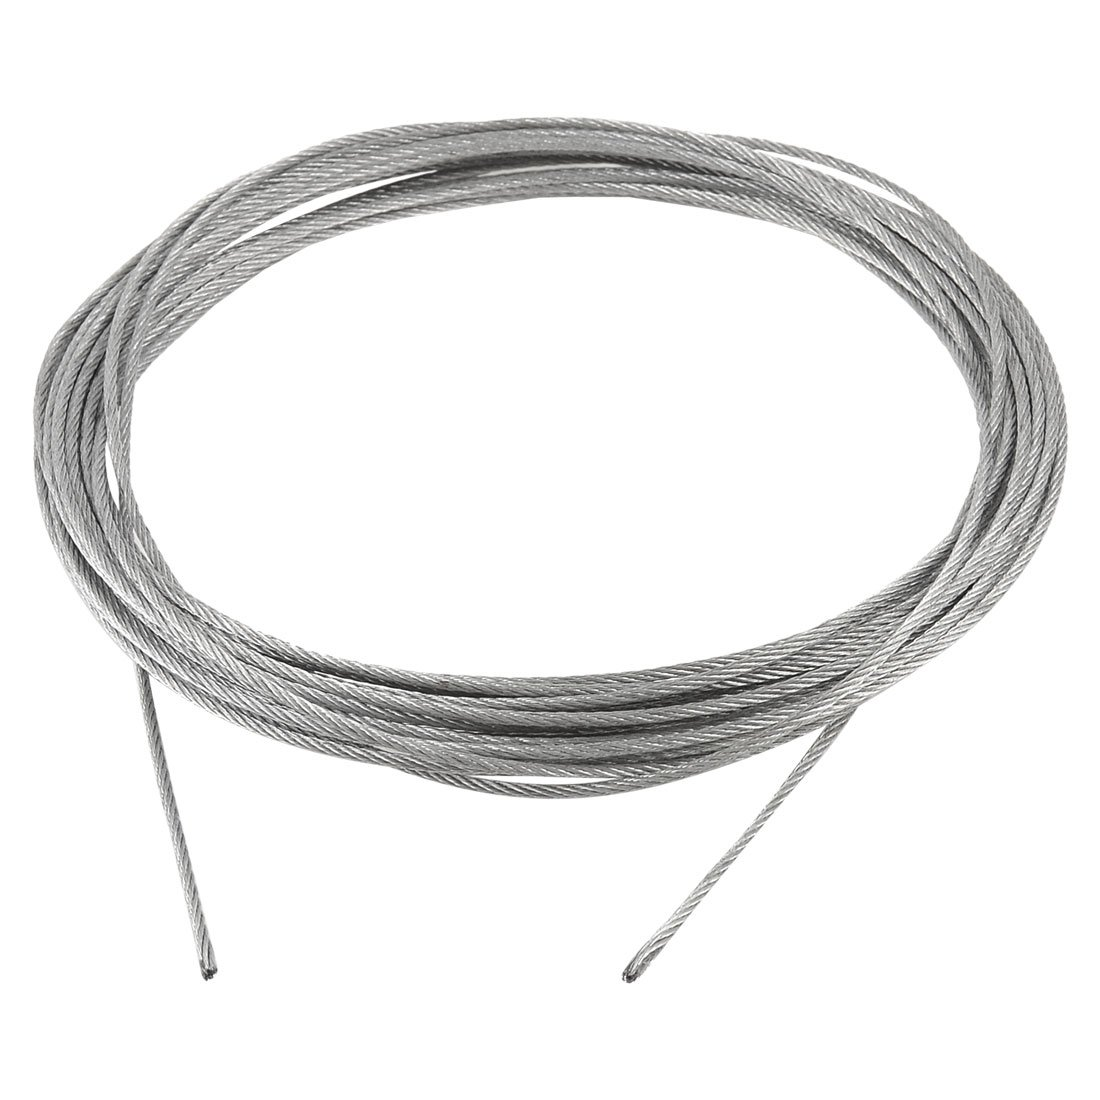 Grinding Machine Grinder 10m x 2mm Stainless Steel Wire Rope Cable Gray 1 2mm dia 7x7 5 2m long flexible stainless steel wire cable for grinder